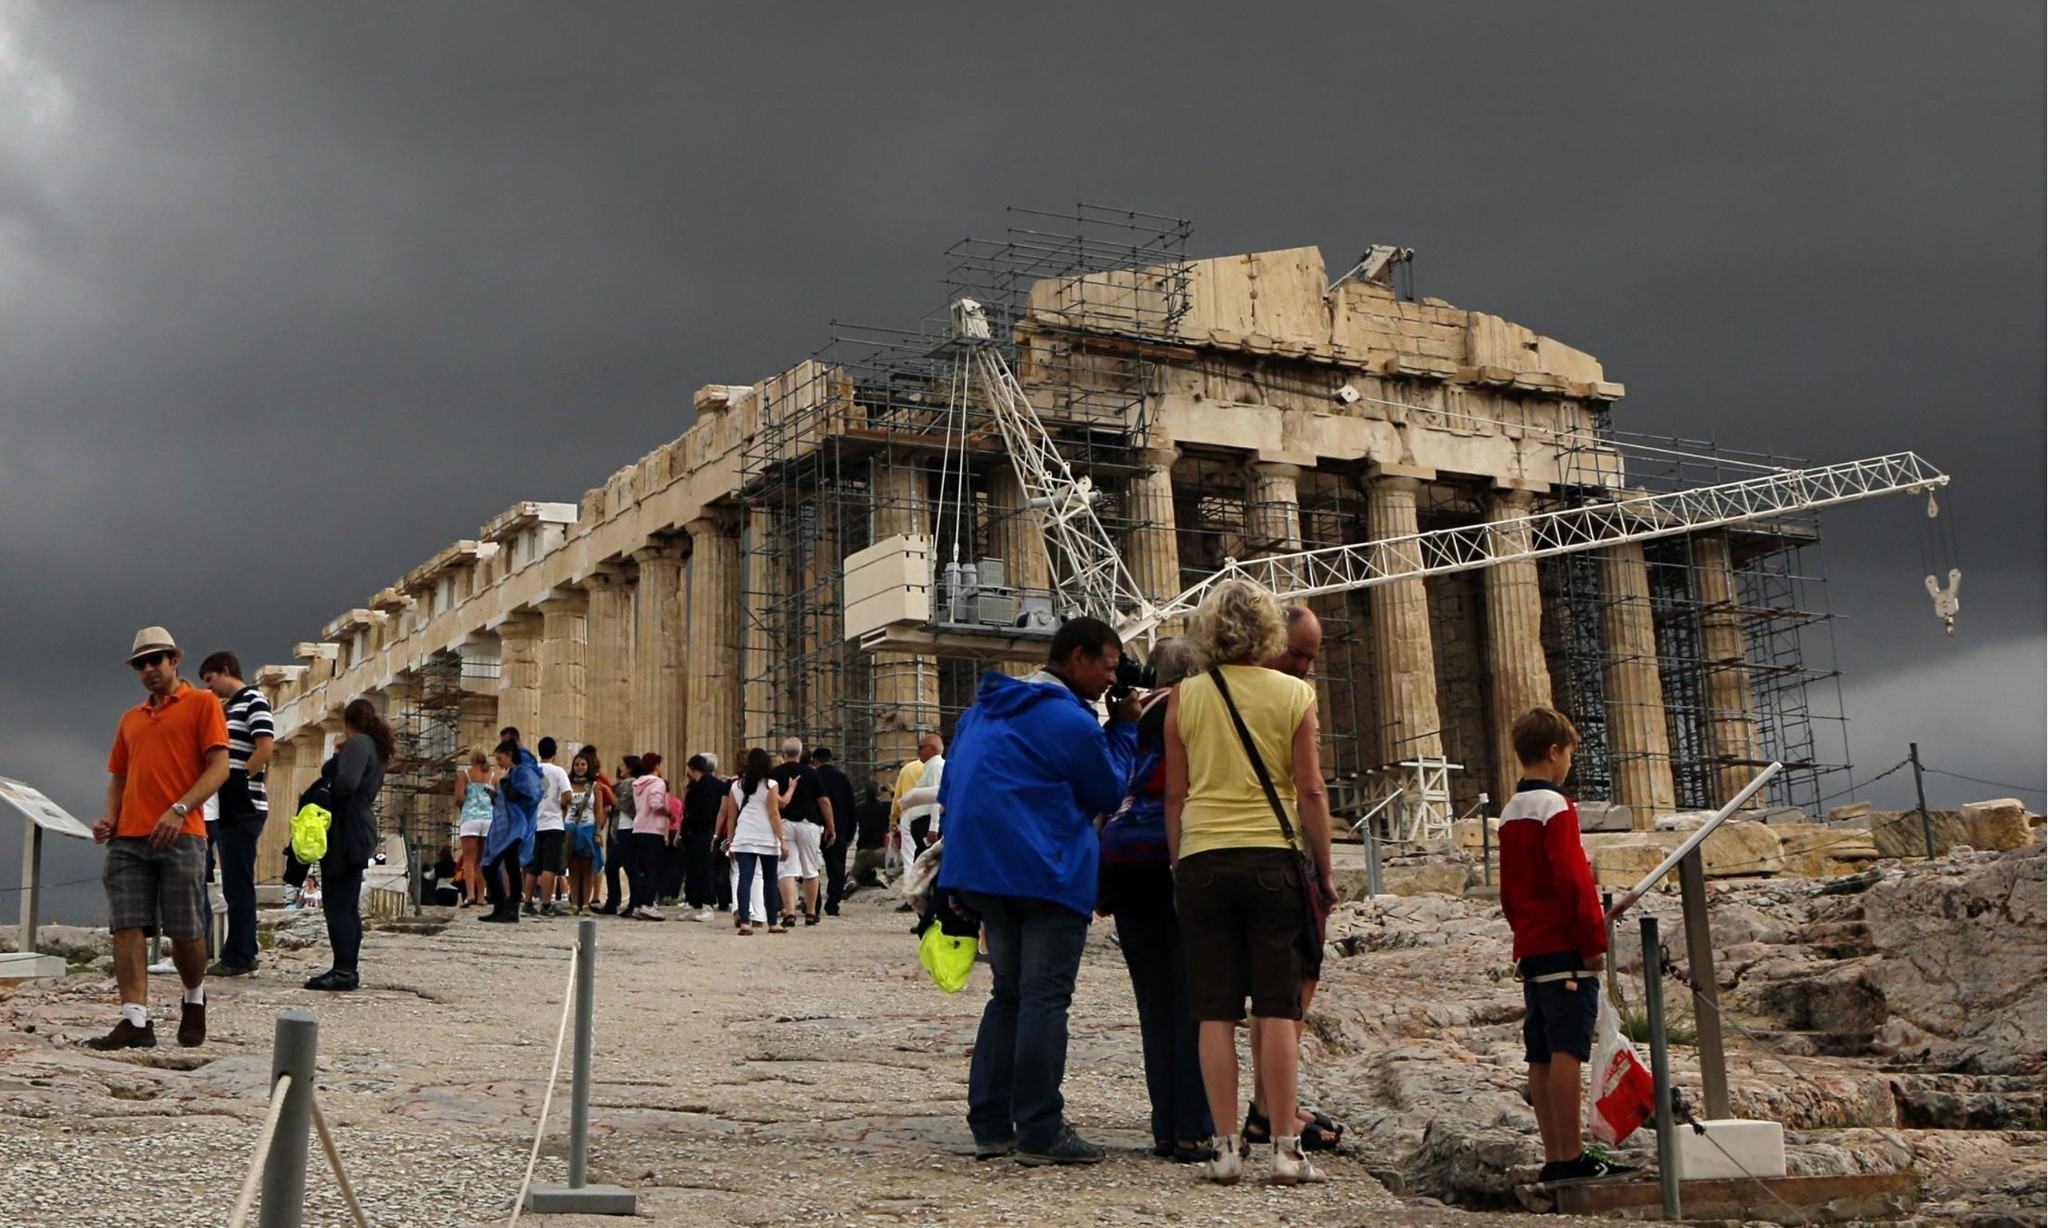 Eurozone crisis, five years on: no happy ending in sight for Greek odyssey